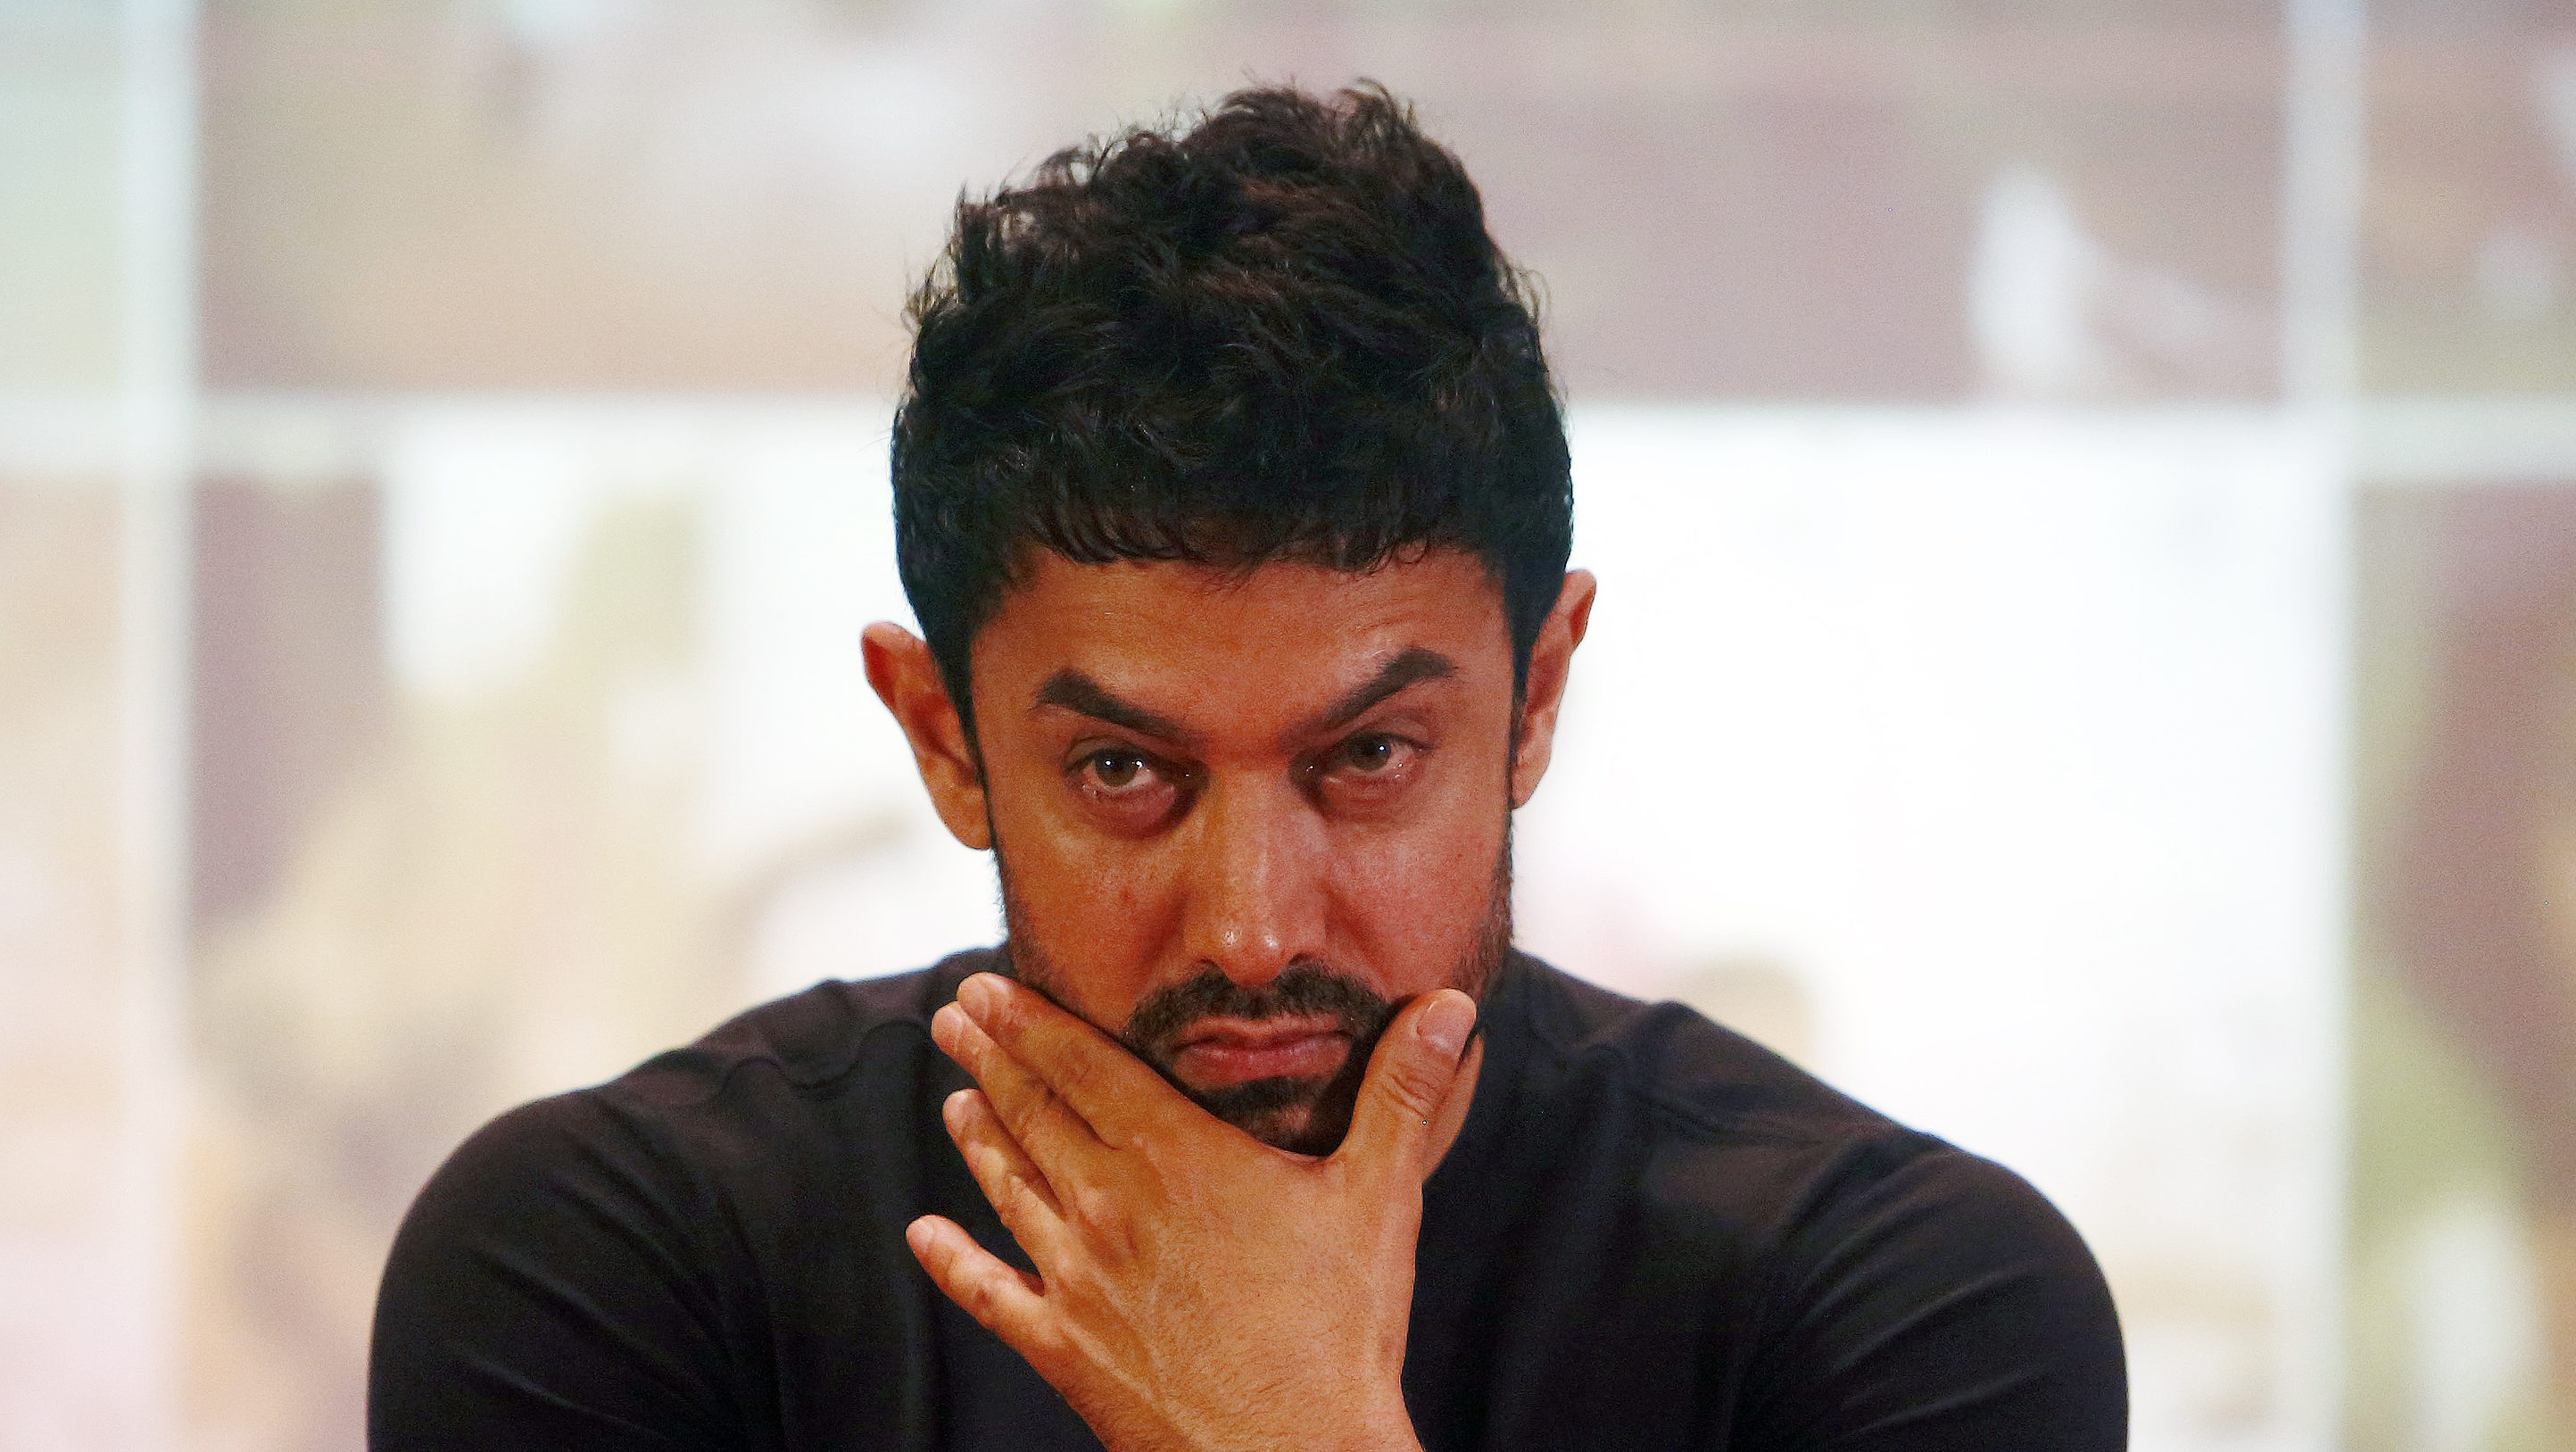 Bollywood actor Aamir Khan attends a news conference after an event to launch him as a United Nations Children's Fund (UNICEF) Regional Goodwill Ambassador for south Asia, in Kathmandu October 9, 2014. REUTERS/Navesh Chitrakar